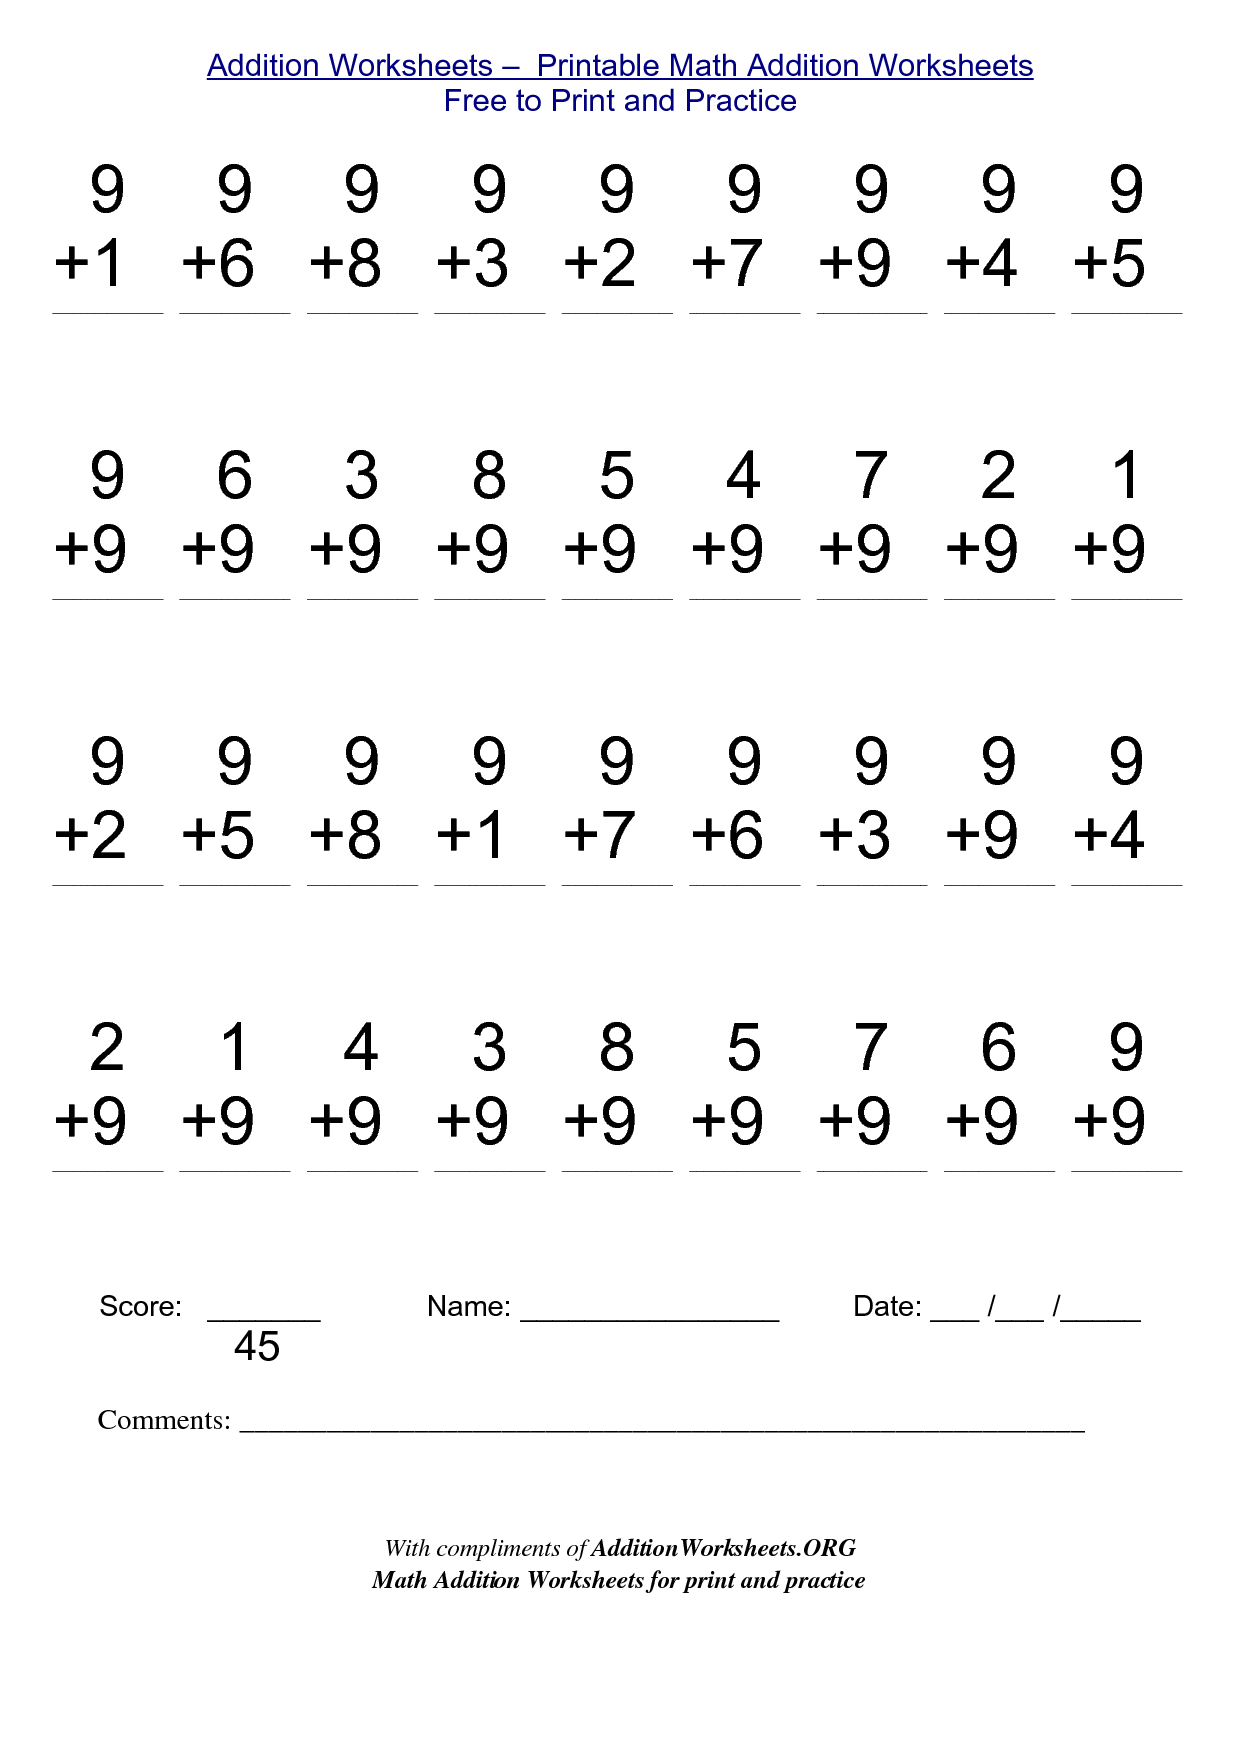 Free Worksheet Free Printable Math Worksheets For 1st Graders first grade worksheets dinosaur math year 1 maths for free to print alot com